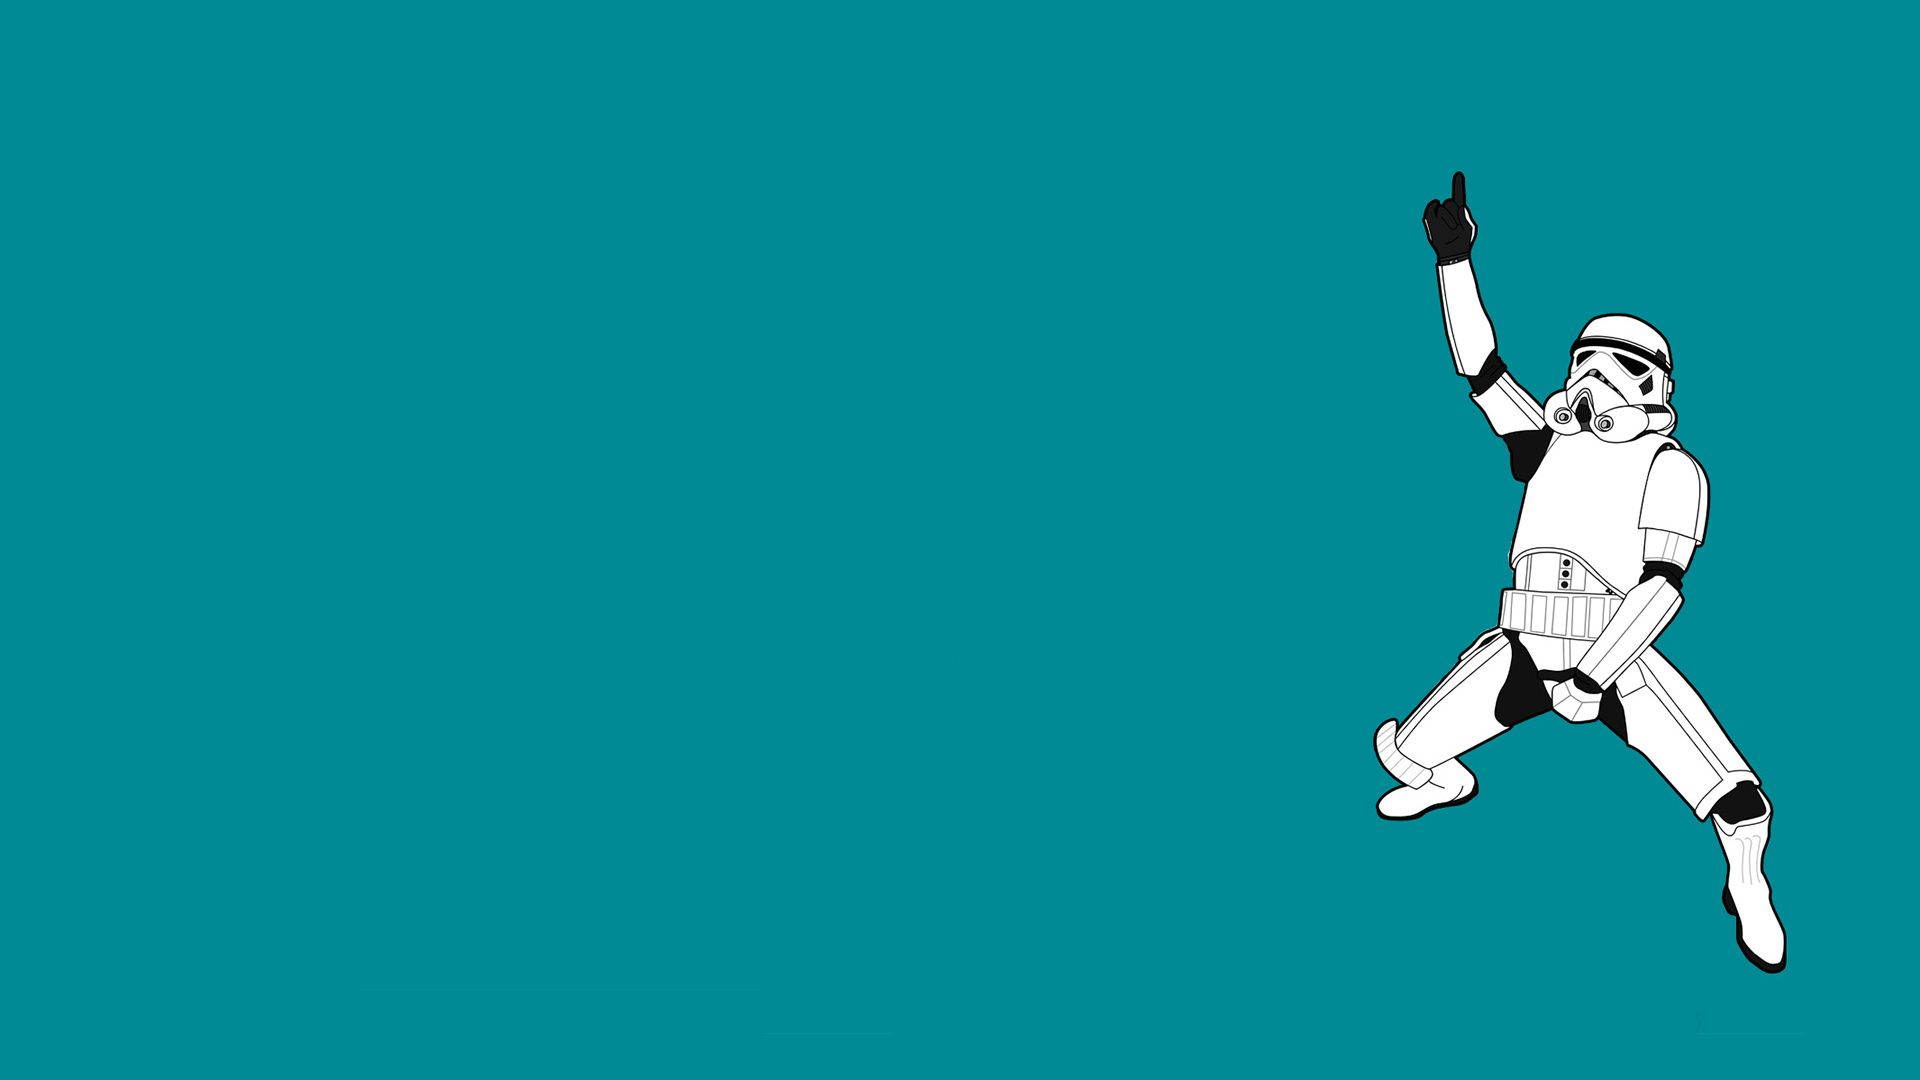 Star Wars Minimalist Hd Wallpaper For Laptop Funny Backgrounds 1920x1080 Wallpaper Teahub Io